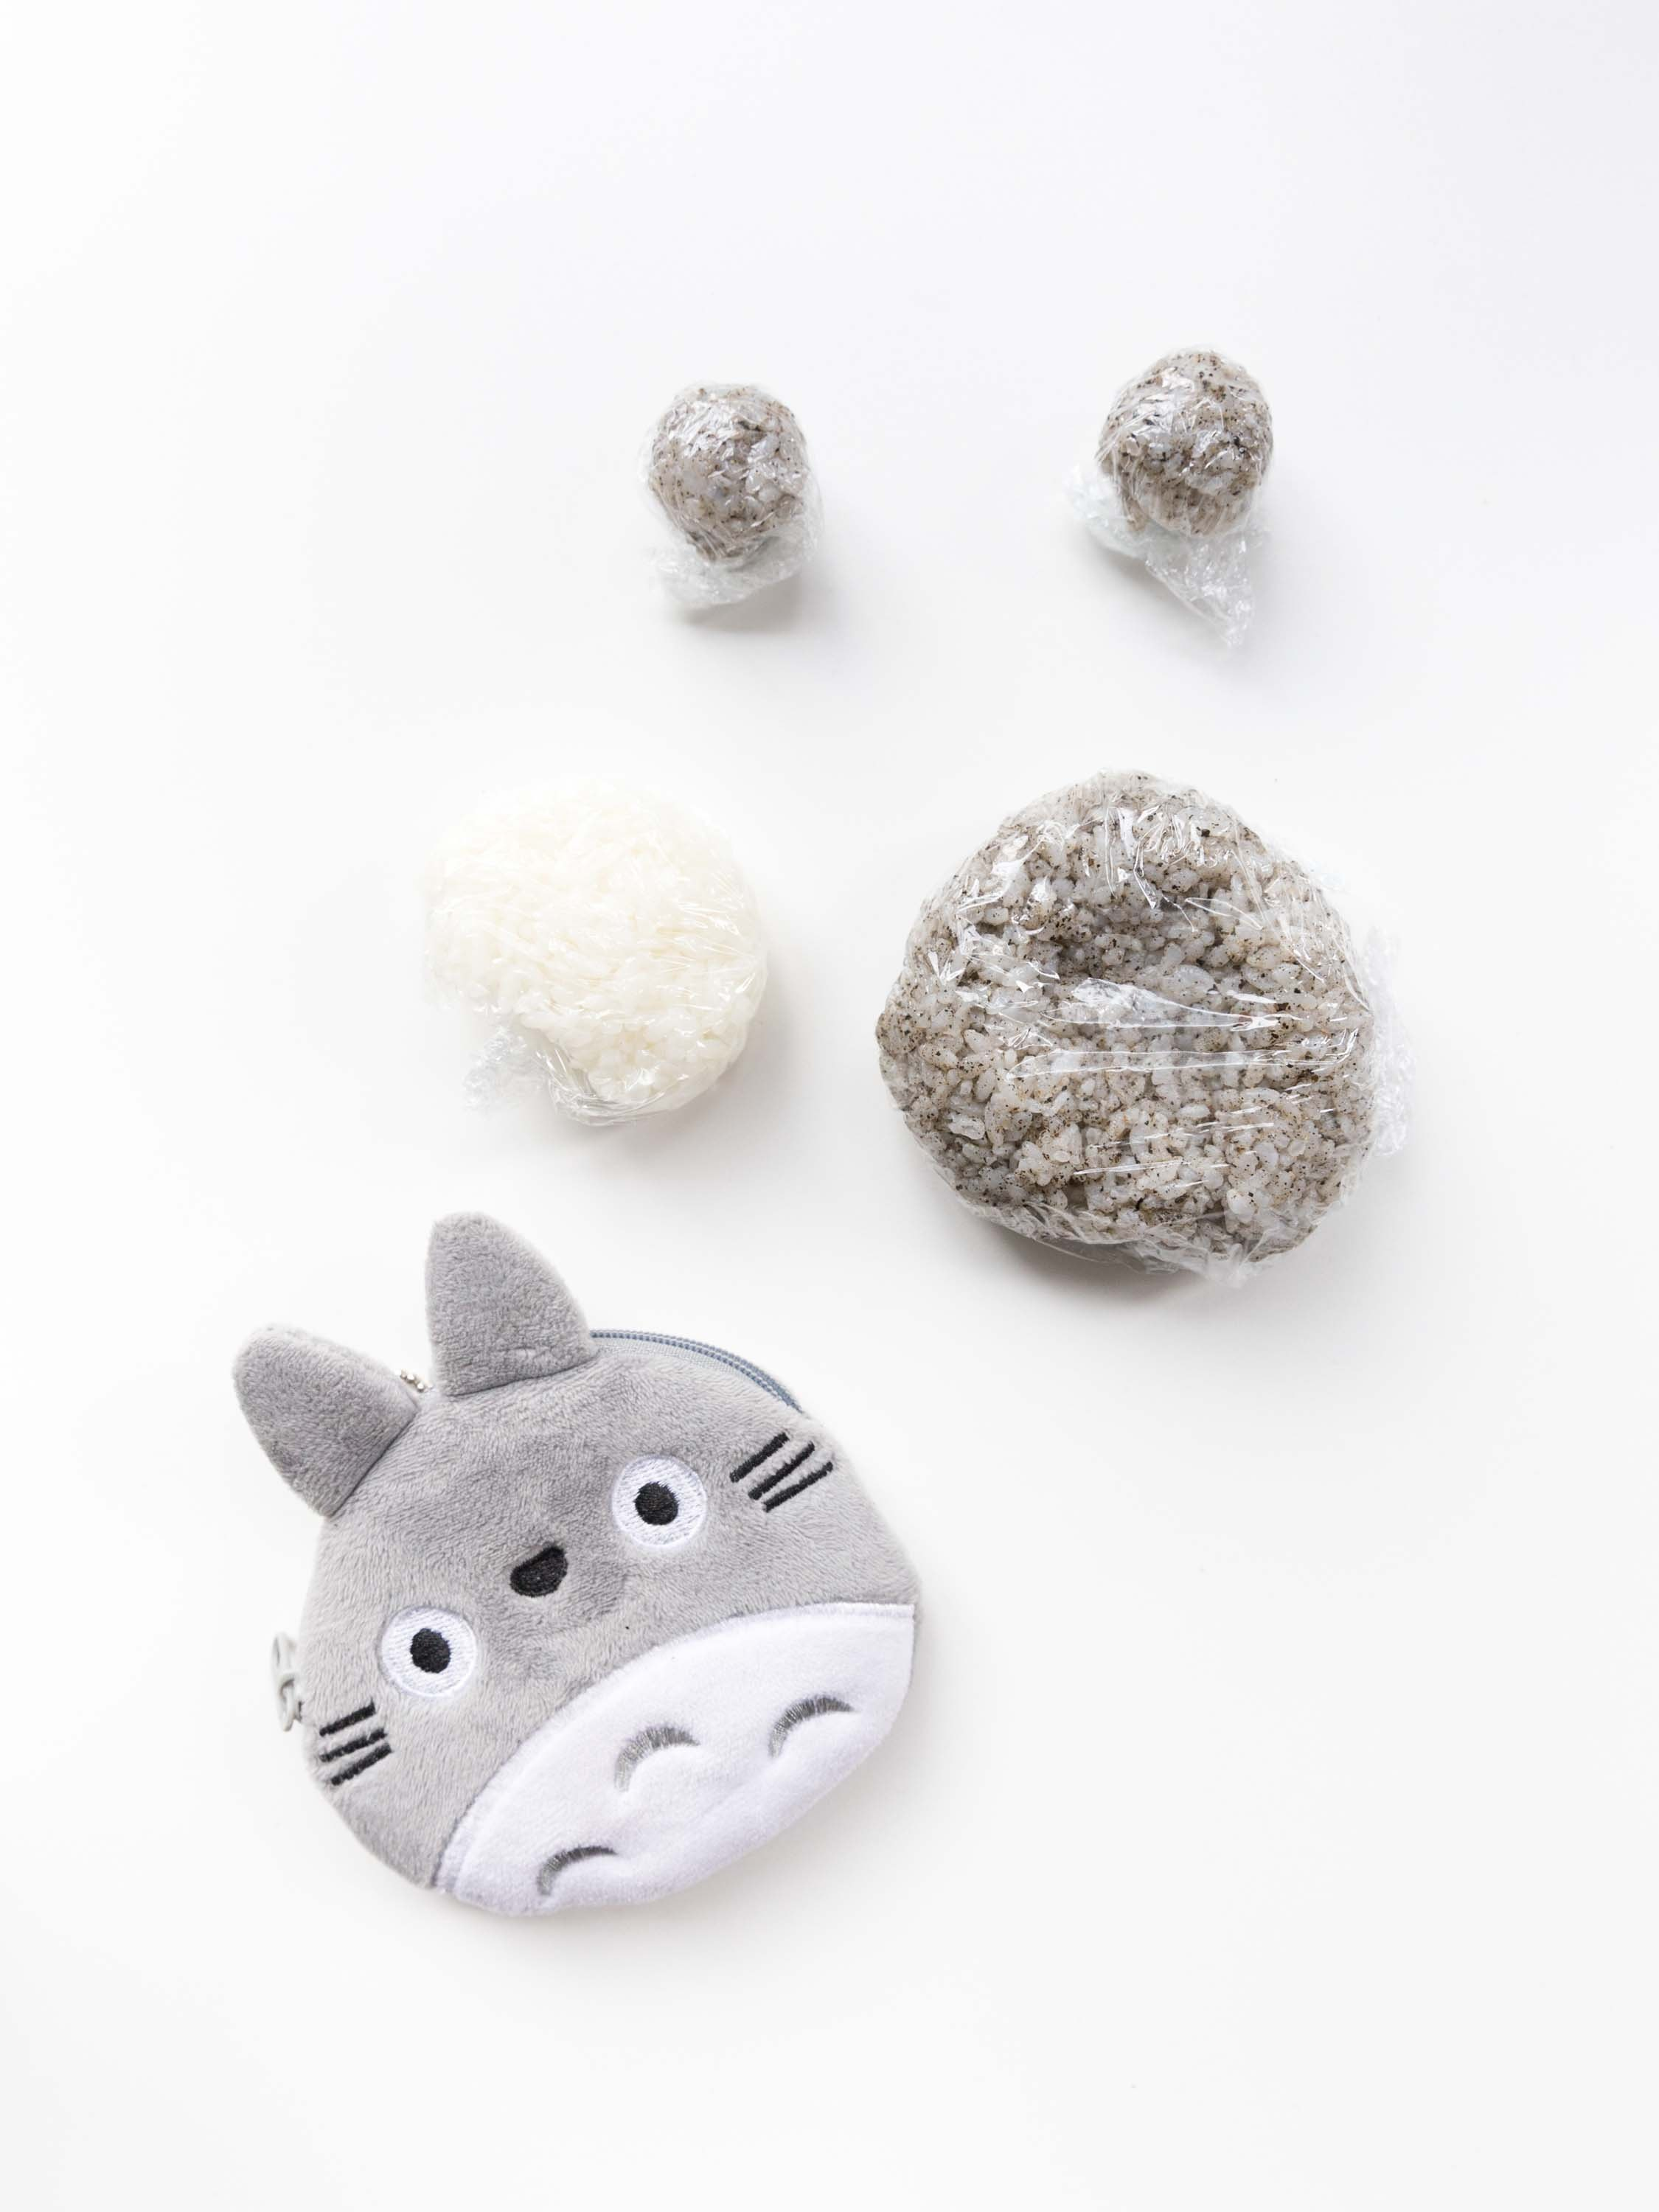 how_to_make_totoro_rice_cake_food_styling_4.jpg